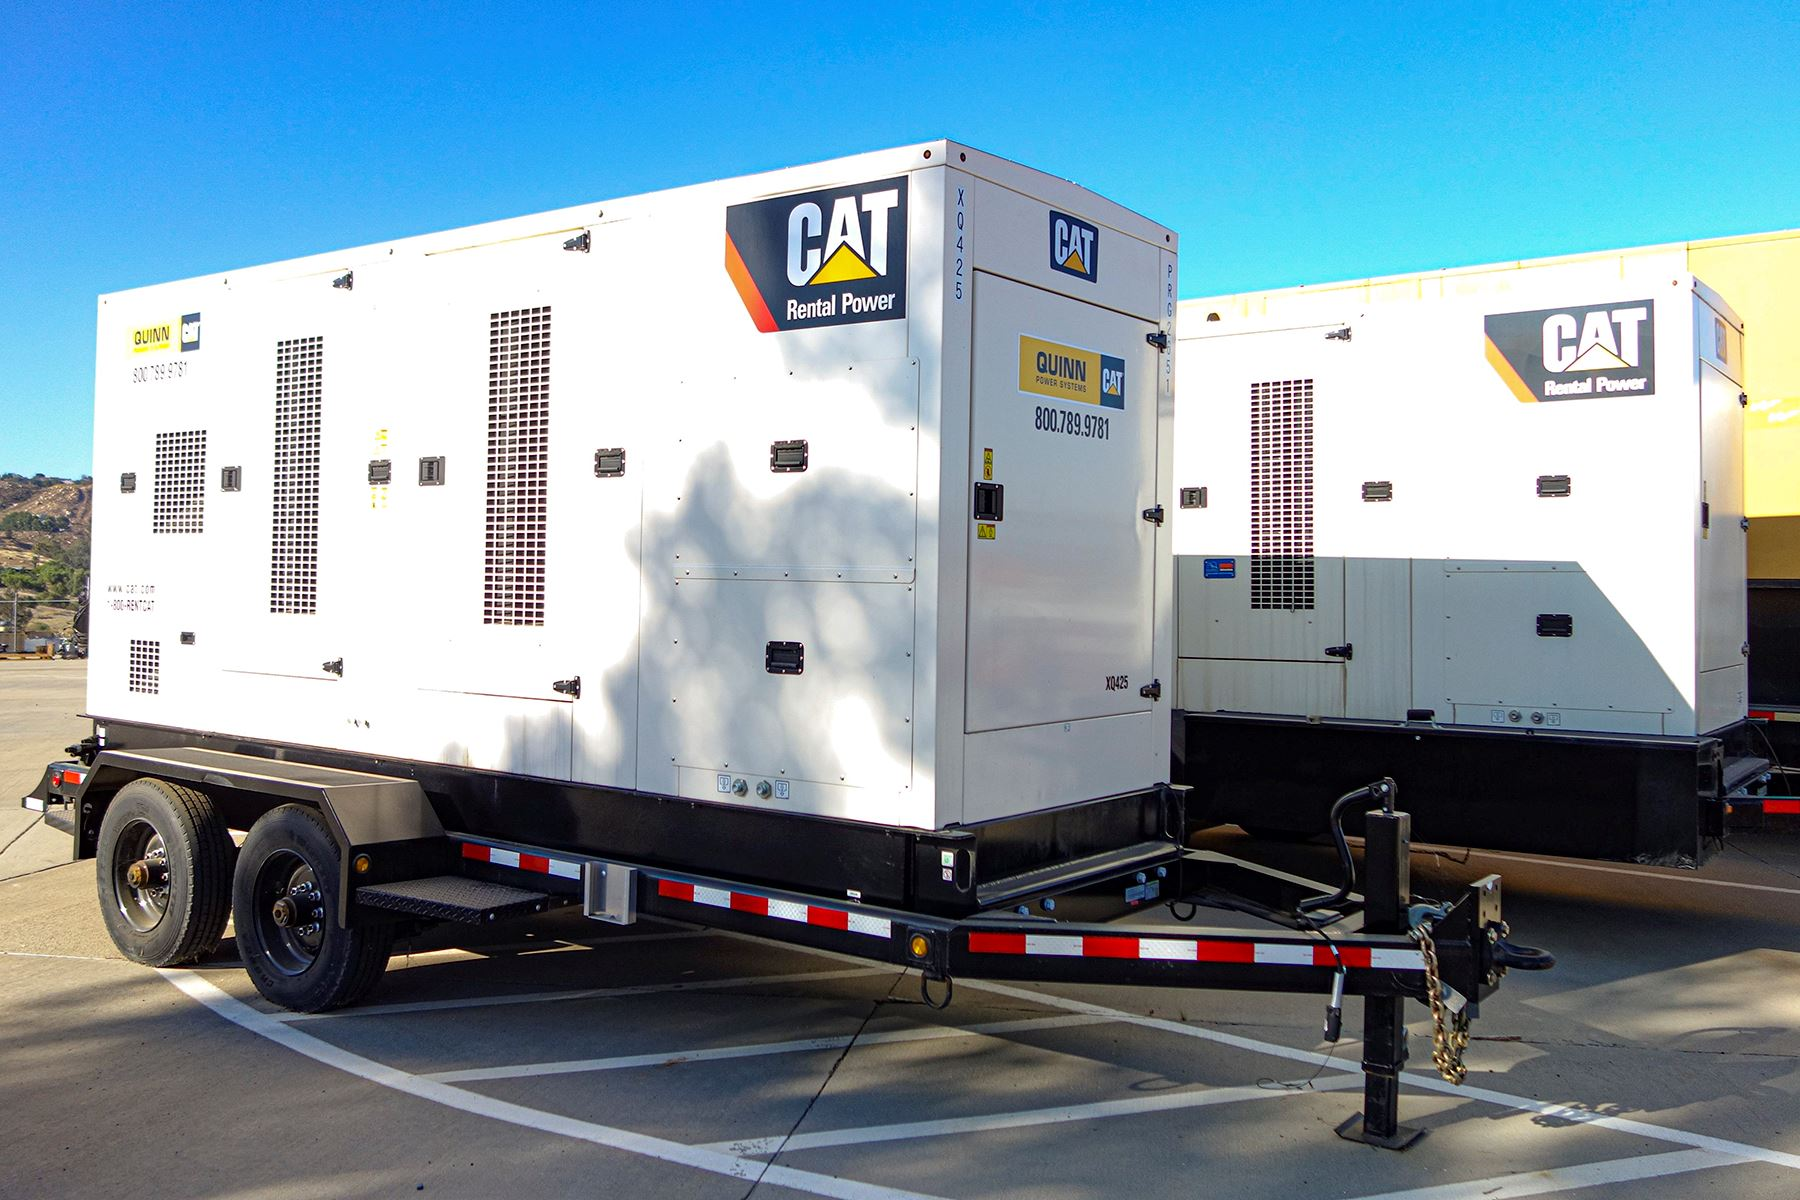 Western has backup power generators available to deploy to key facilities during an outage.